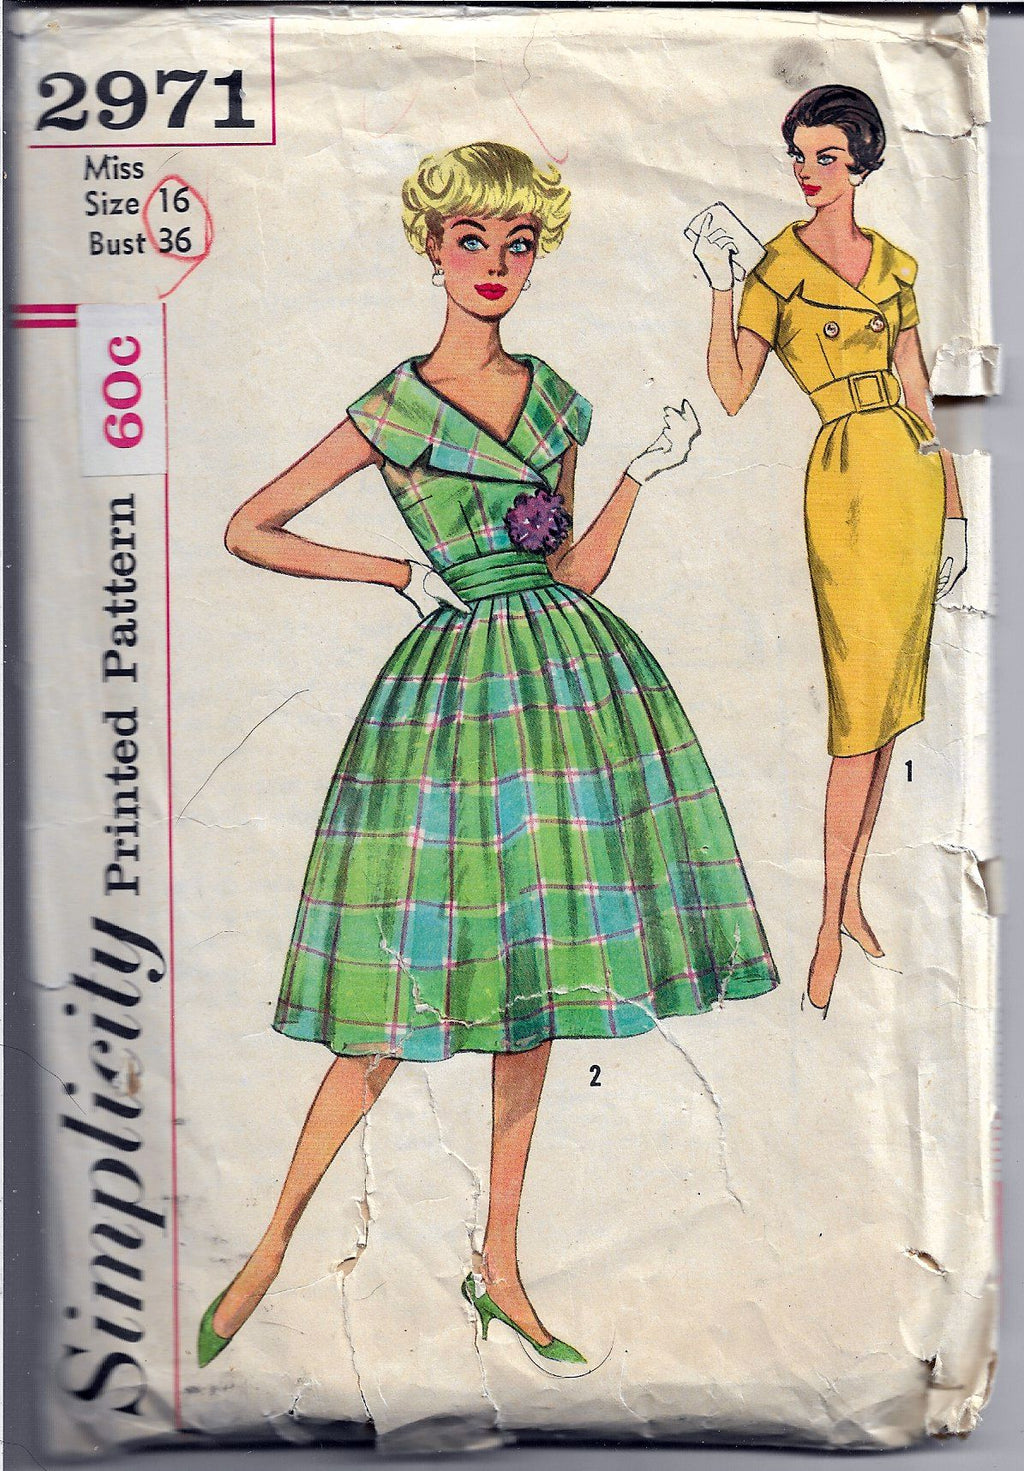 Simplicity 2971 Ladies Dress Lapel Collar Vintage Sewing Pattern 1950's - VintageStitching - Vintage Sewing Patterns